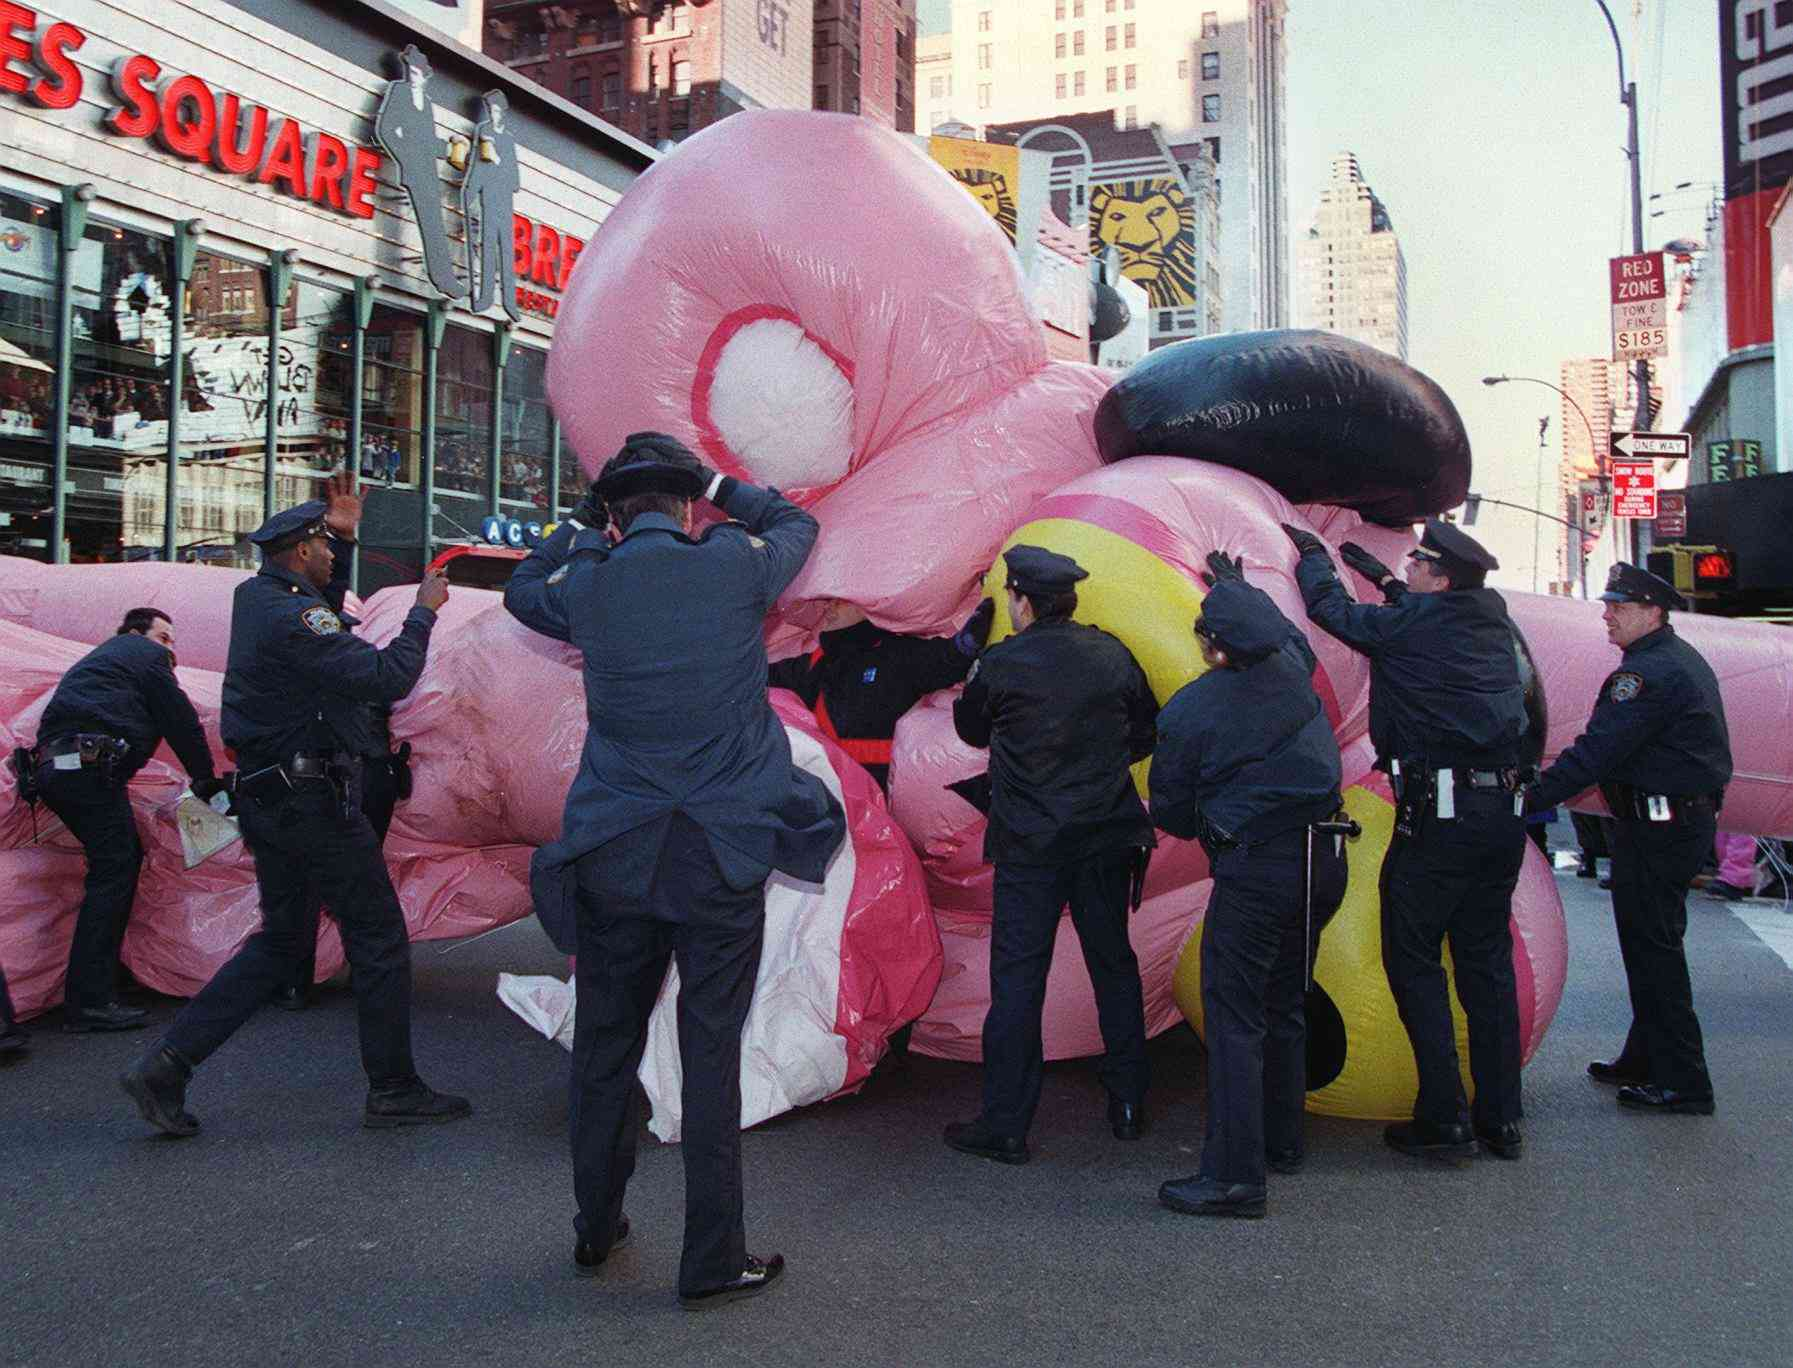 police rescuing Pink Panther balloon at Macy's parade